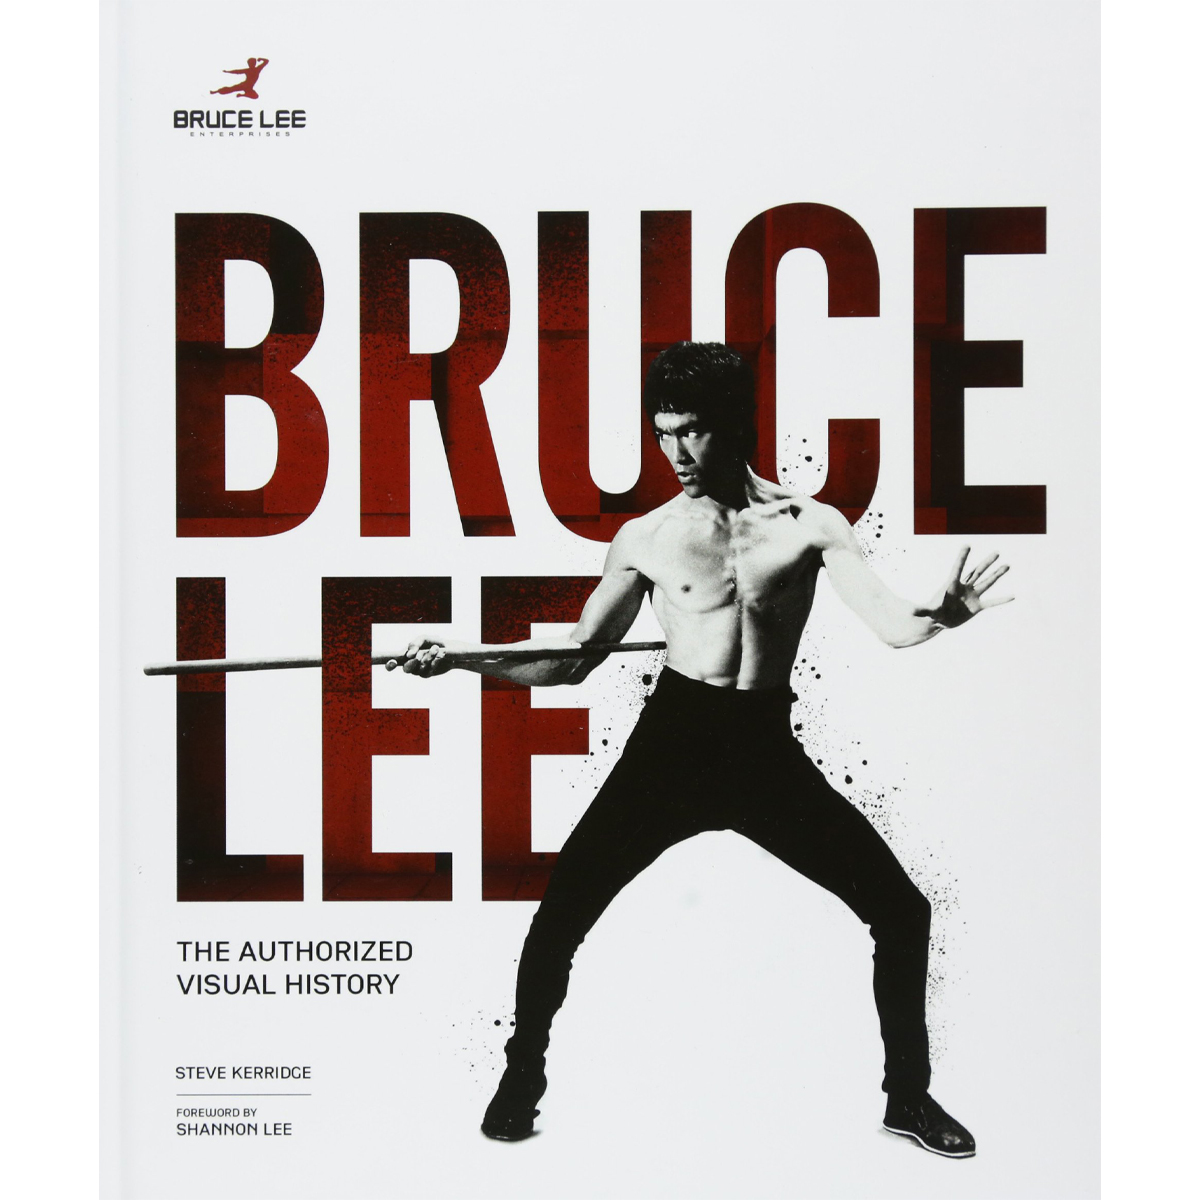 Bruce Lee - The Authorized Visual History Book